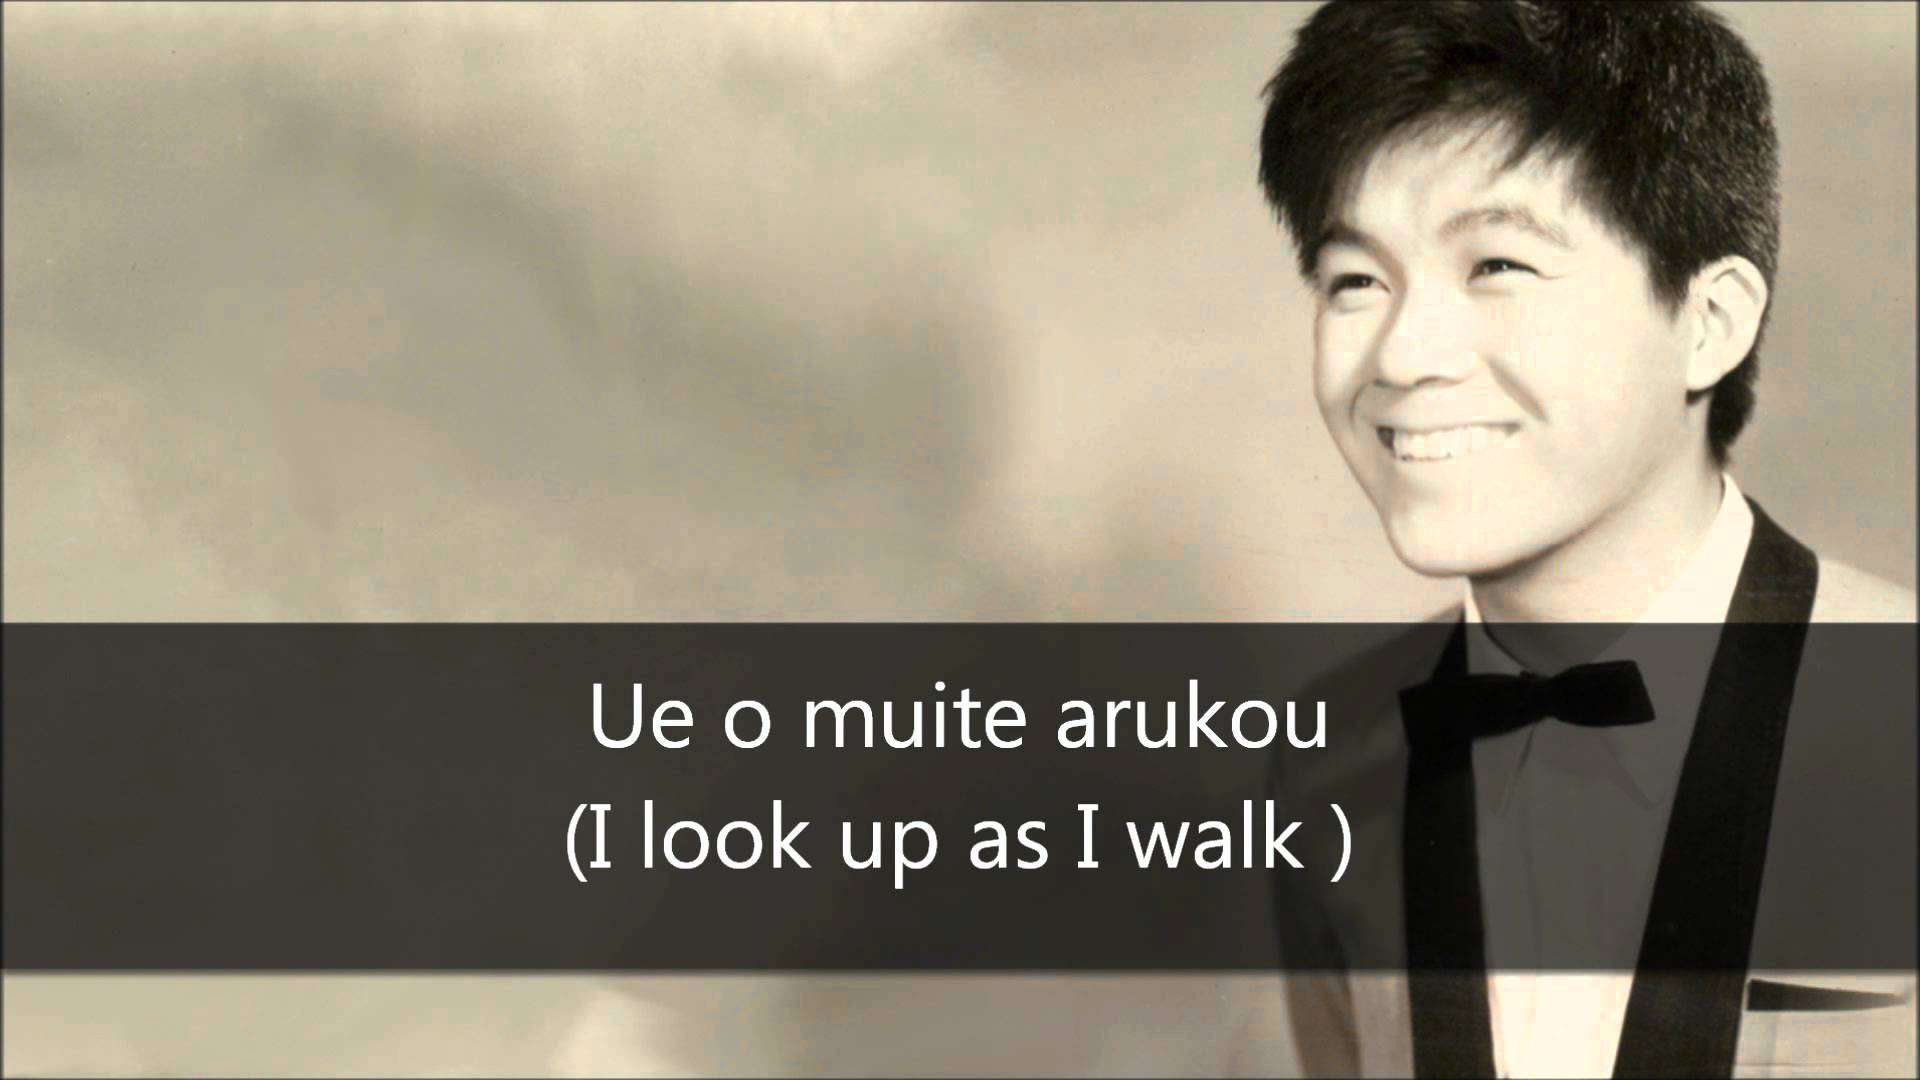 Sukiyaki (Ue o Muite Arukou) - Kyu Sakamoto (English Translation and Lyrics) - YouTube